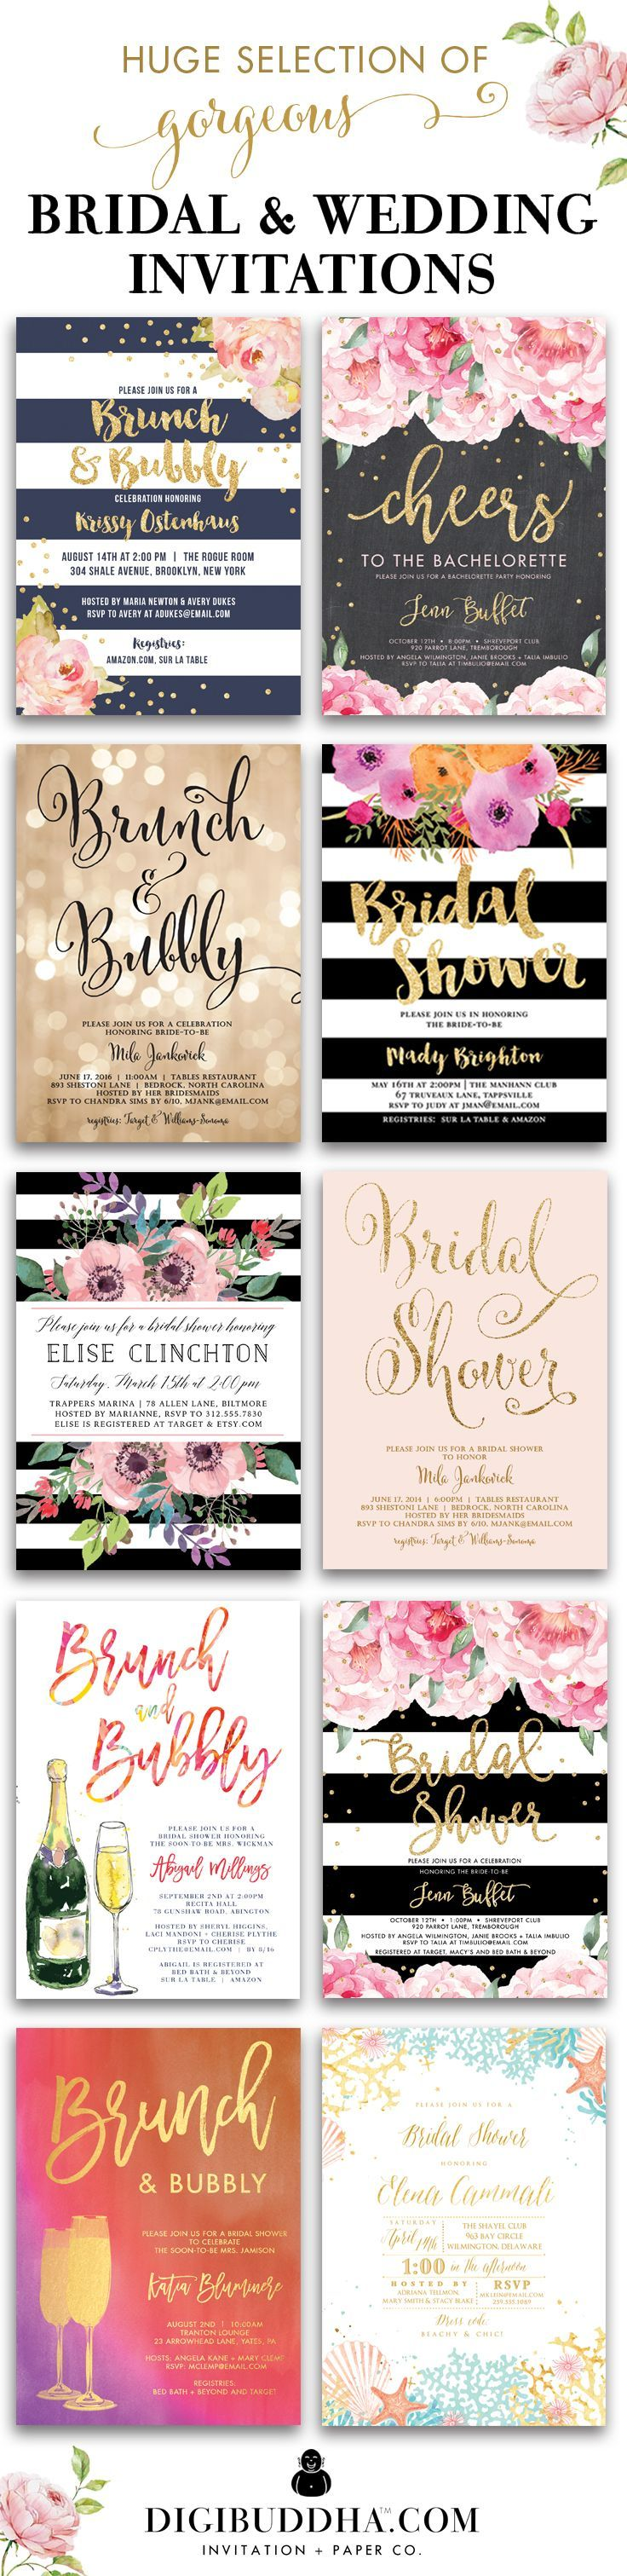 Huge selection of original trend-setting bridal shower invitations and wedding invitations in styles ranging from modern to classic to elegant, glam, rustic and even boho chic. In any color and just about any fonts you can imagine. Plus add matching envelope liners, address labels and coordinating color envelopes to complete the look. Wow your guests with beautiful invitations. Celebrate Life, Love & Babies with Digibuddha Invitation + Paper Co.